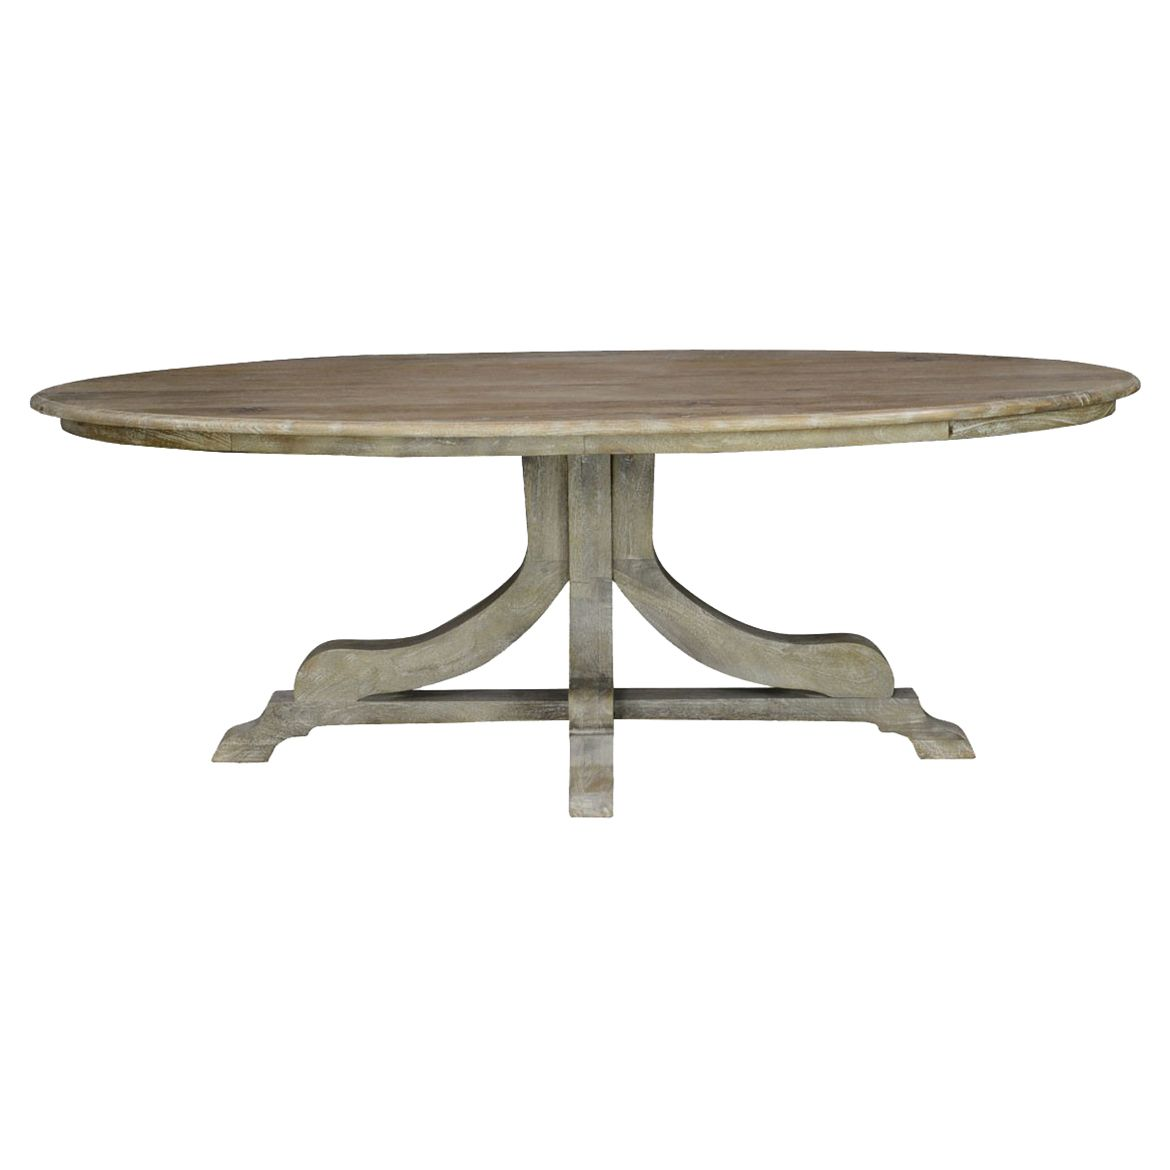 Ollie Rustic Lodge Distressed Grey Wood Pedestal Oval Dining Table In 2021 Oval Table Dining Dining Table Oval Dining Room Table